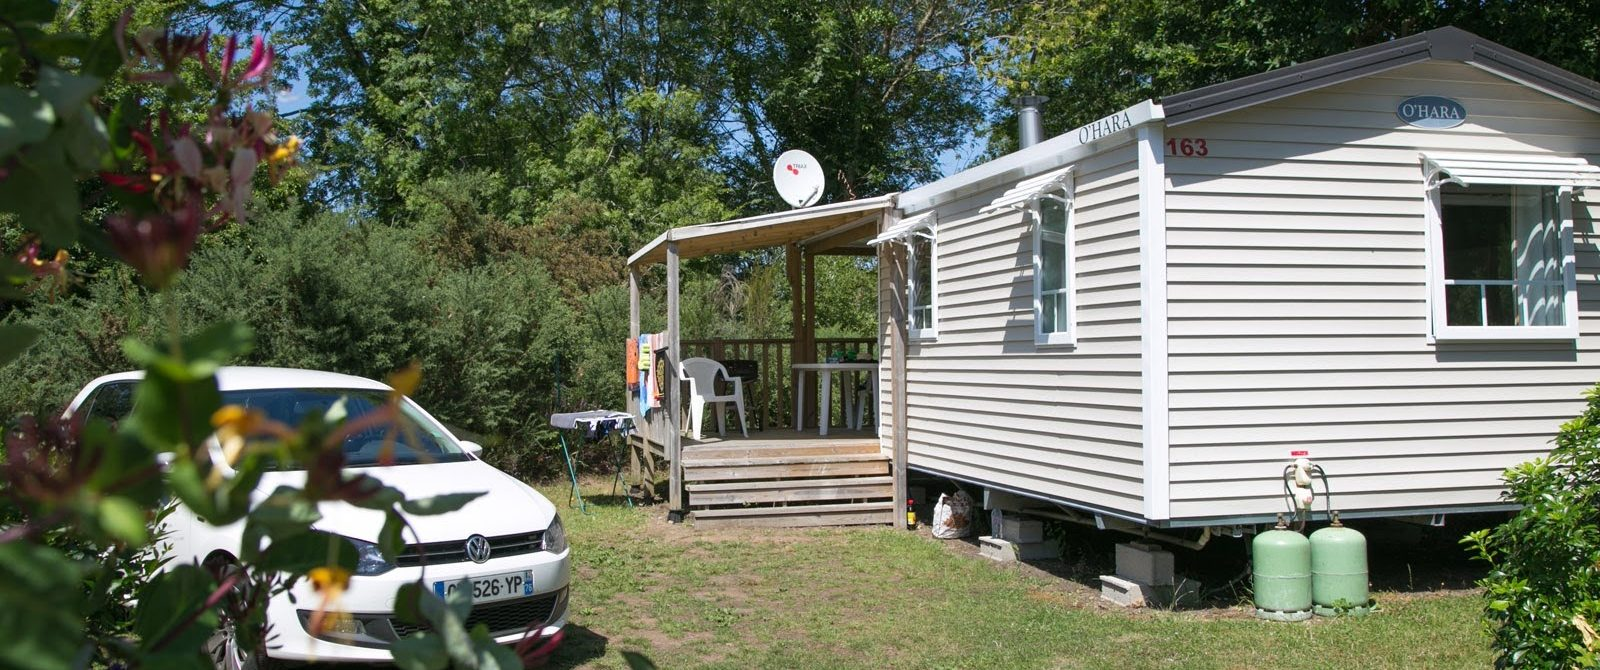 Location camping mobil home